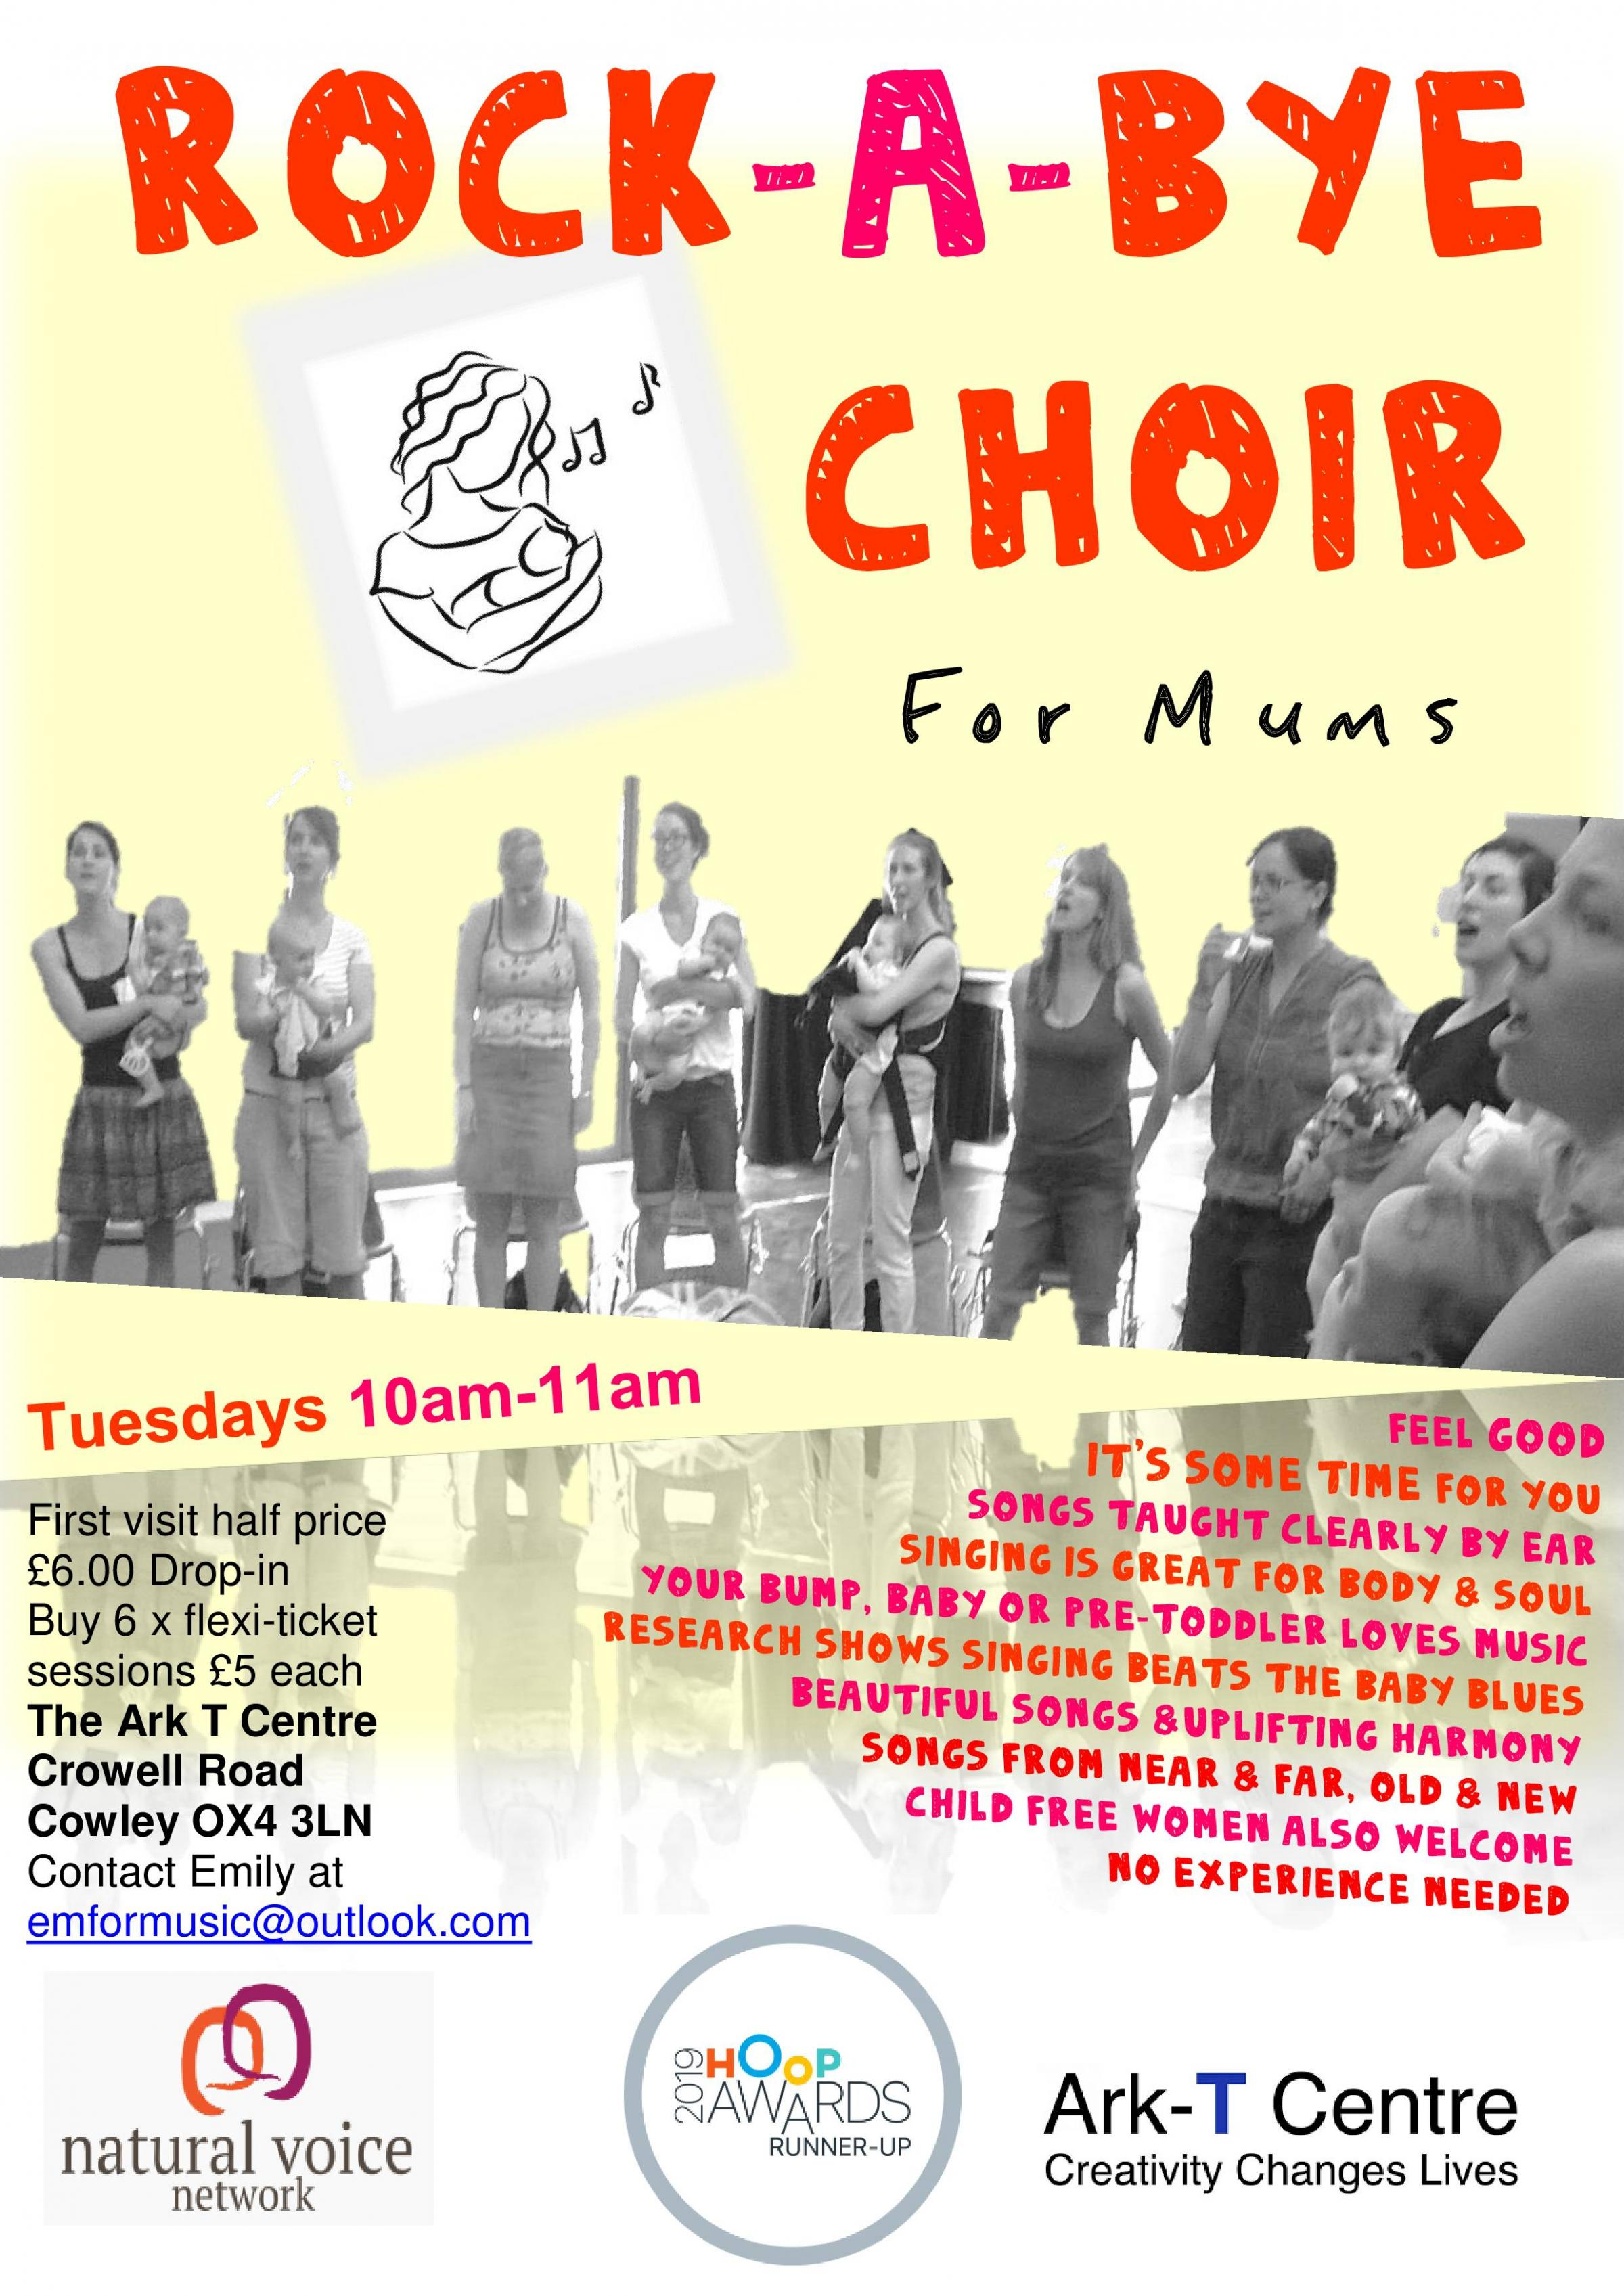 Rock-a-bye Choir for Mums